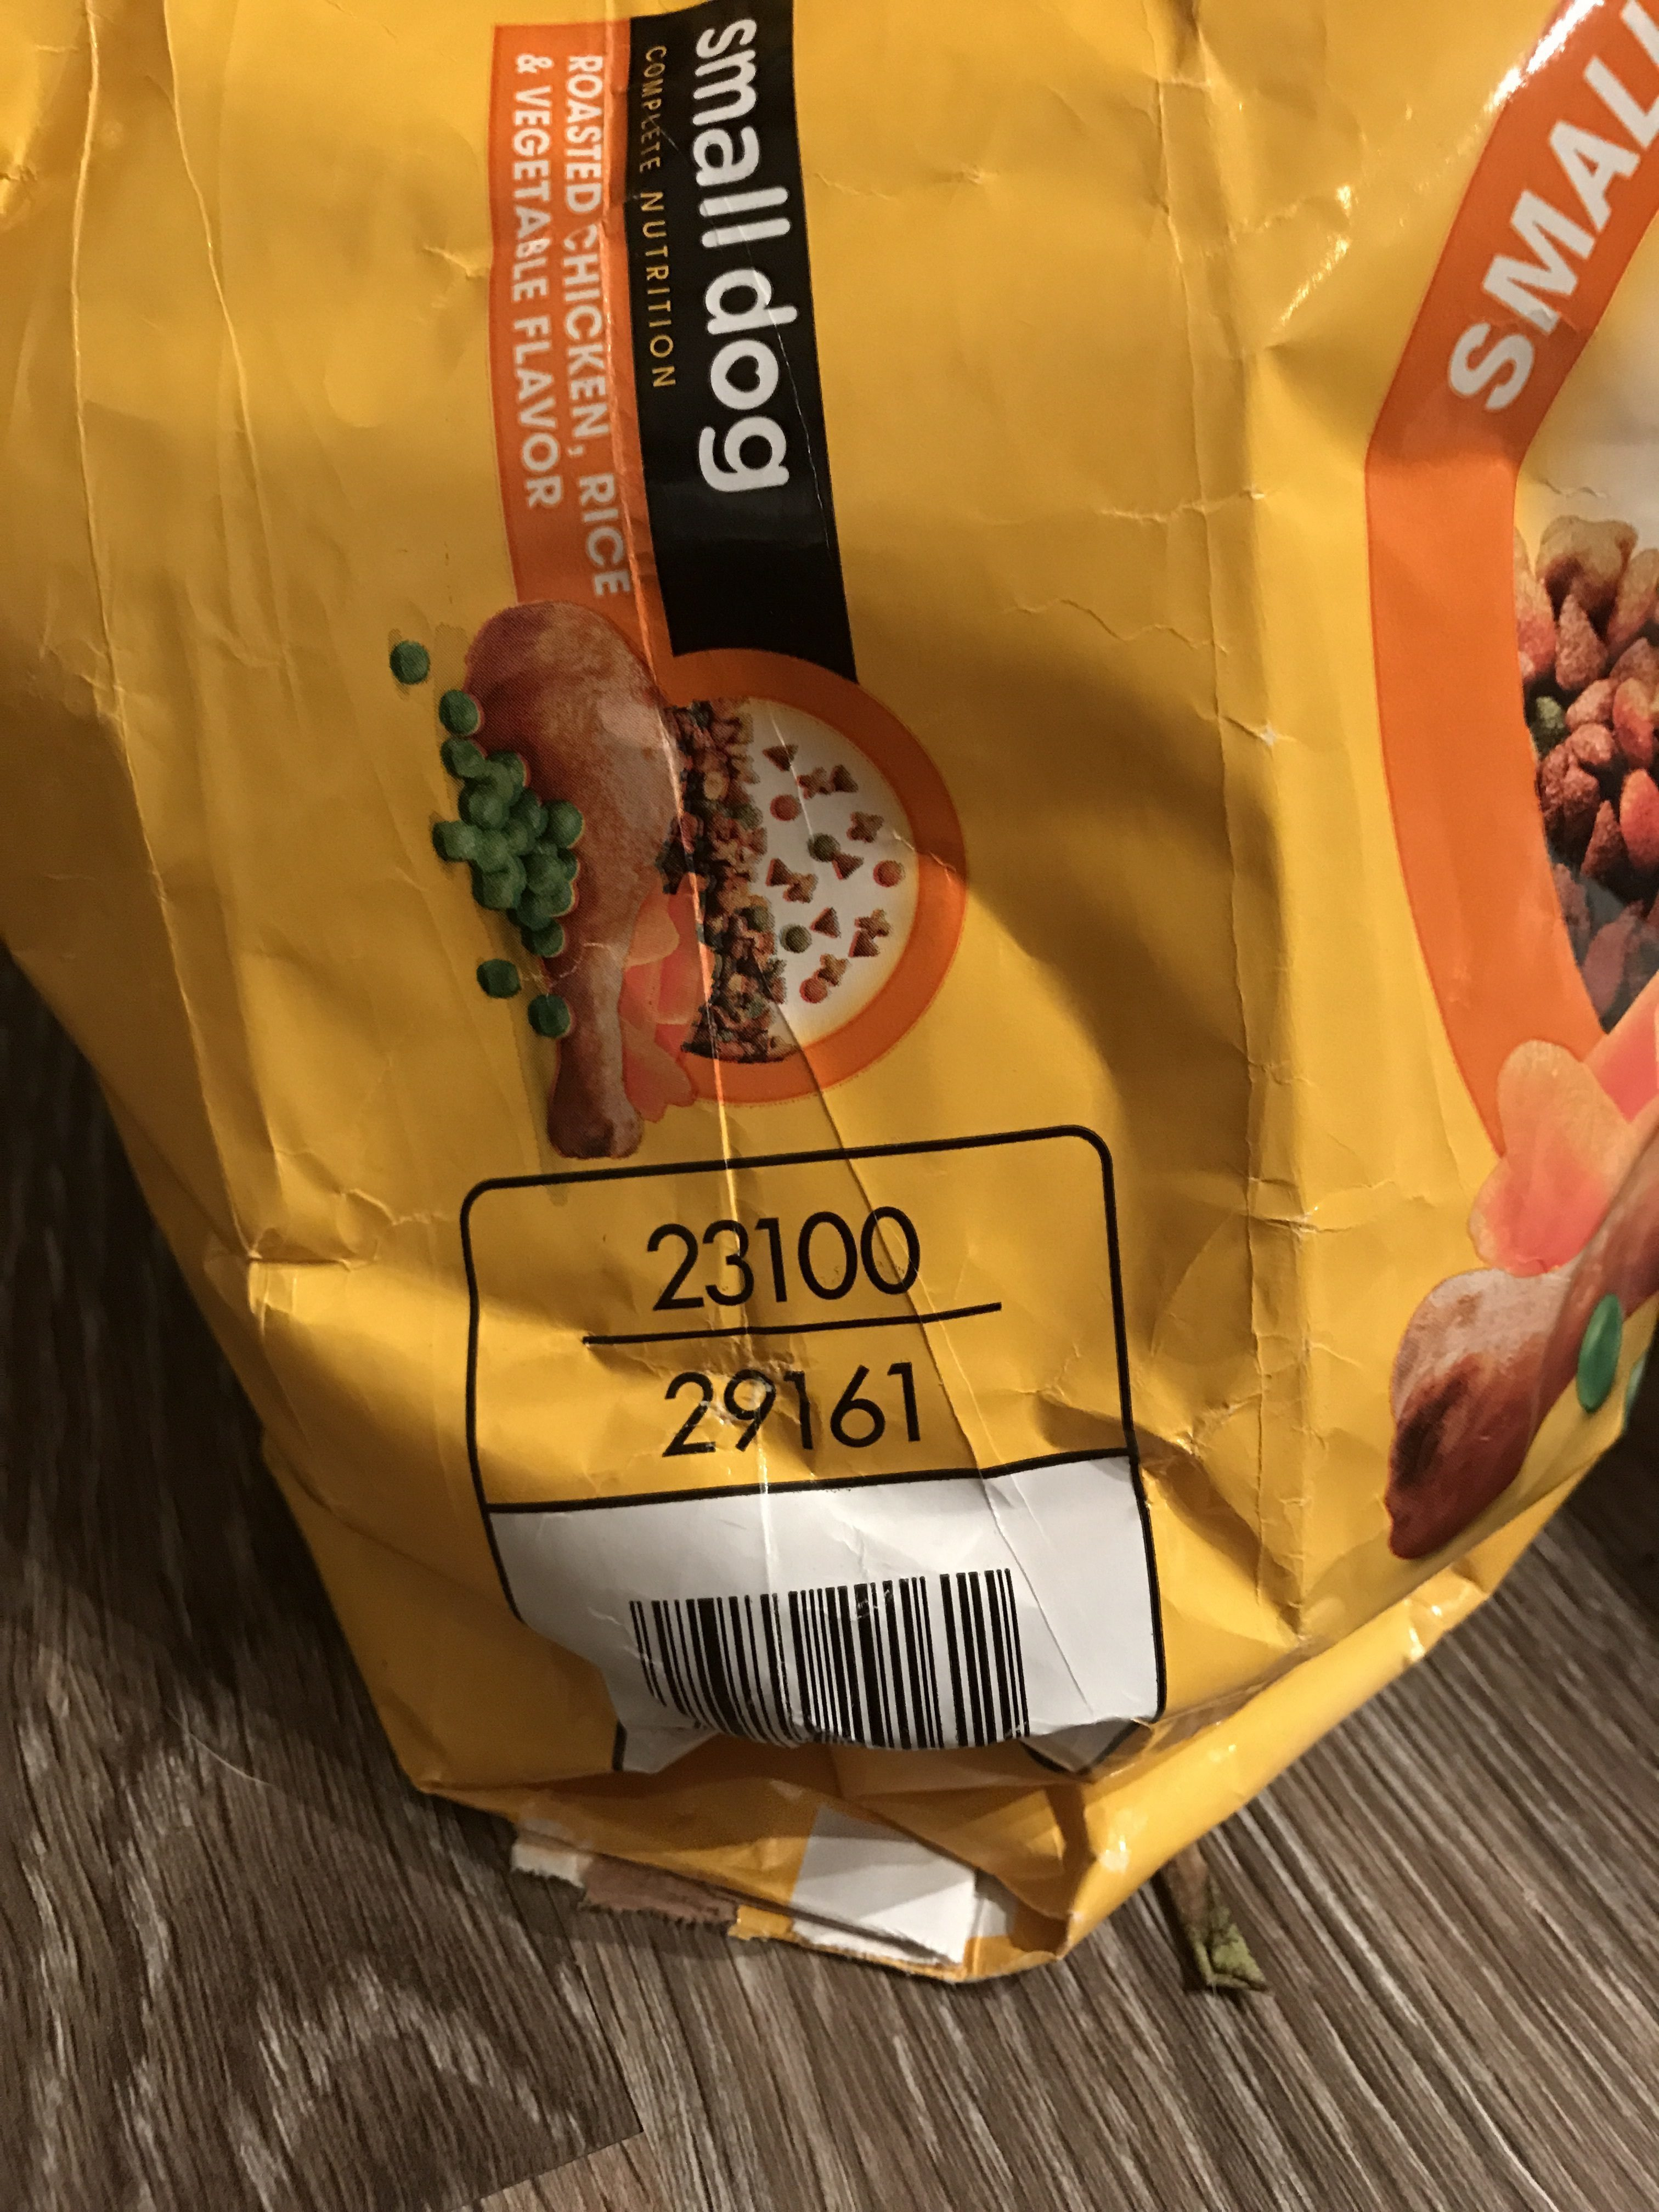 Top 947 Reviews And Complaints About Pedigree Pet Foods